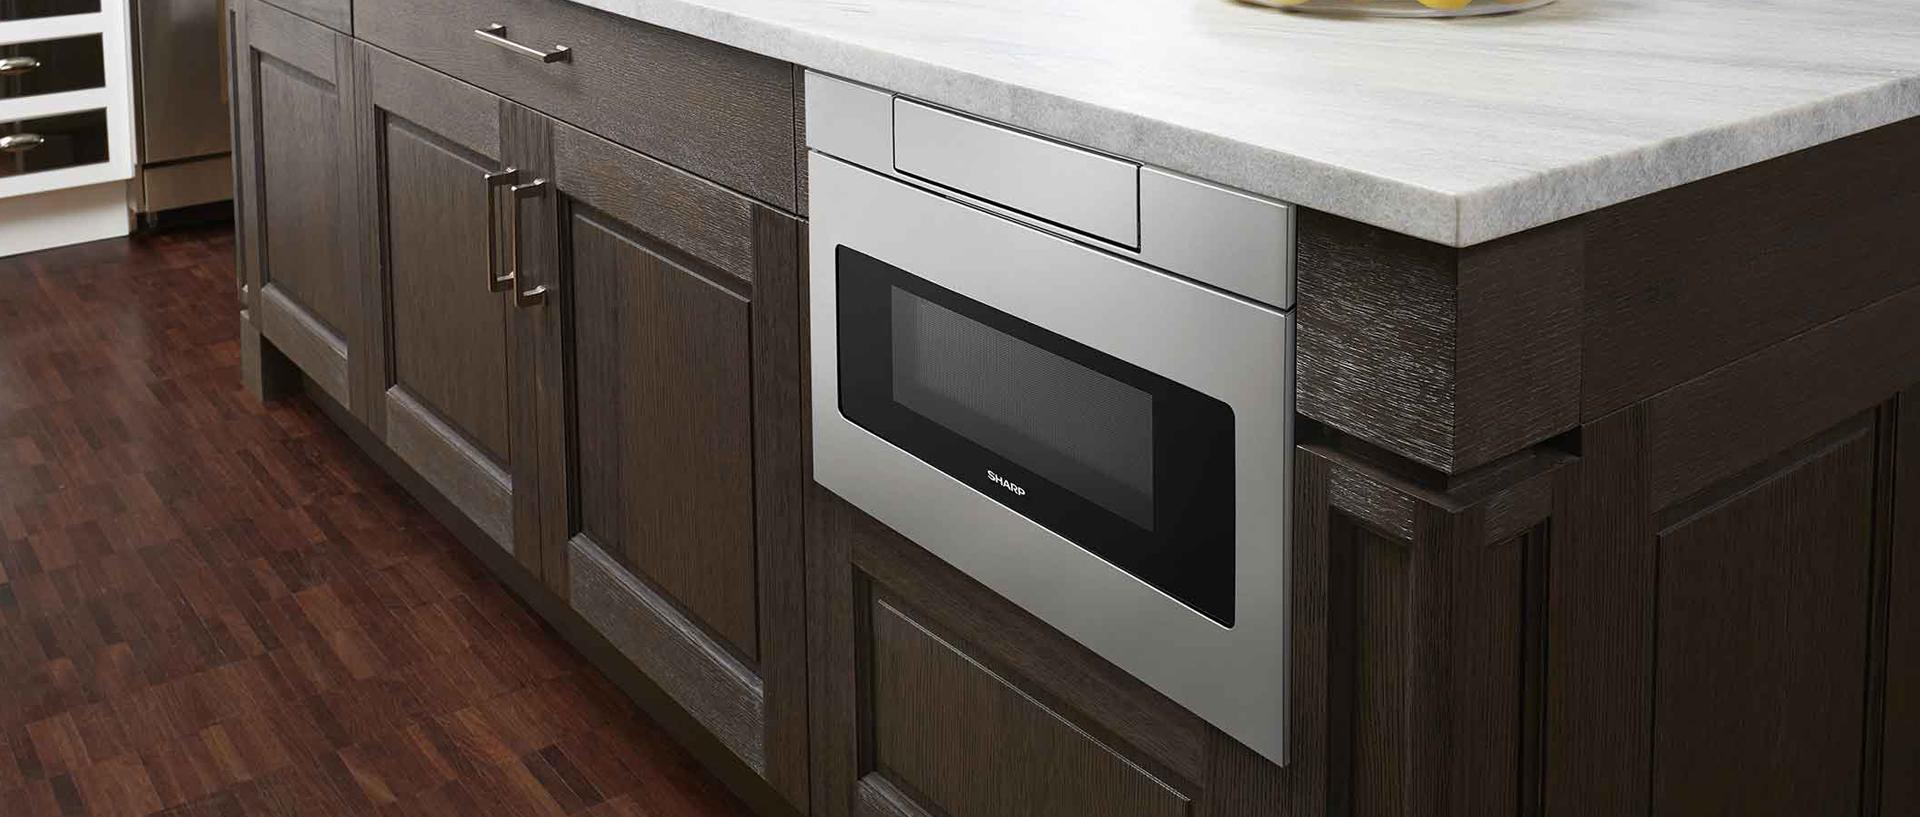 Slide-in and Built-in Appliances Give Your Kitchen a Sleek Look